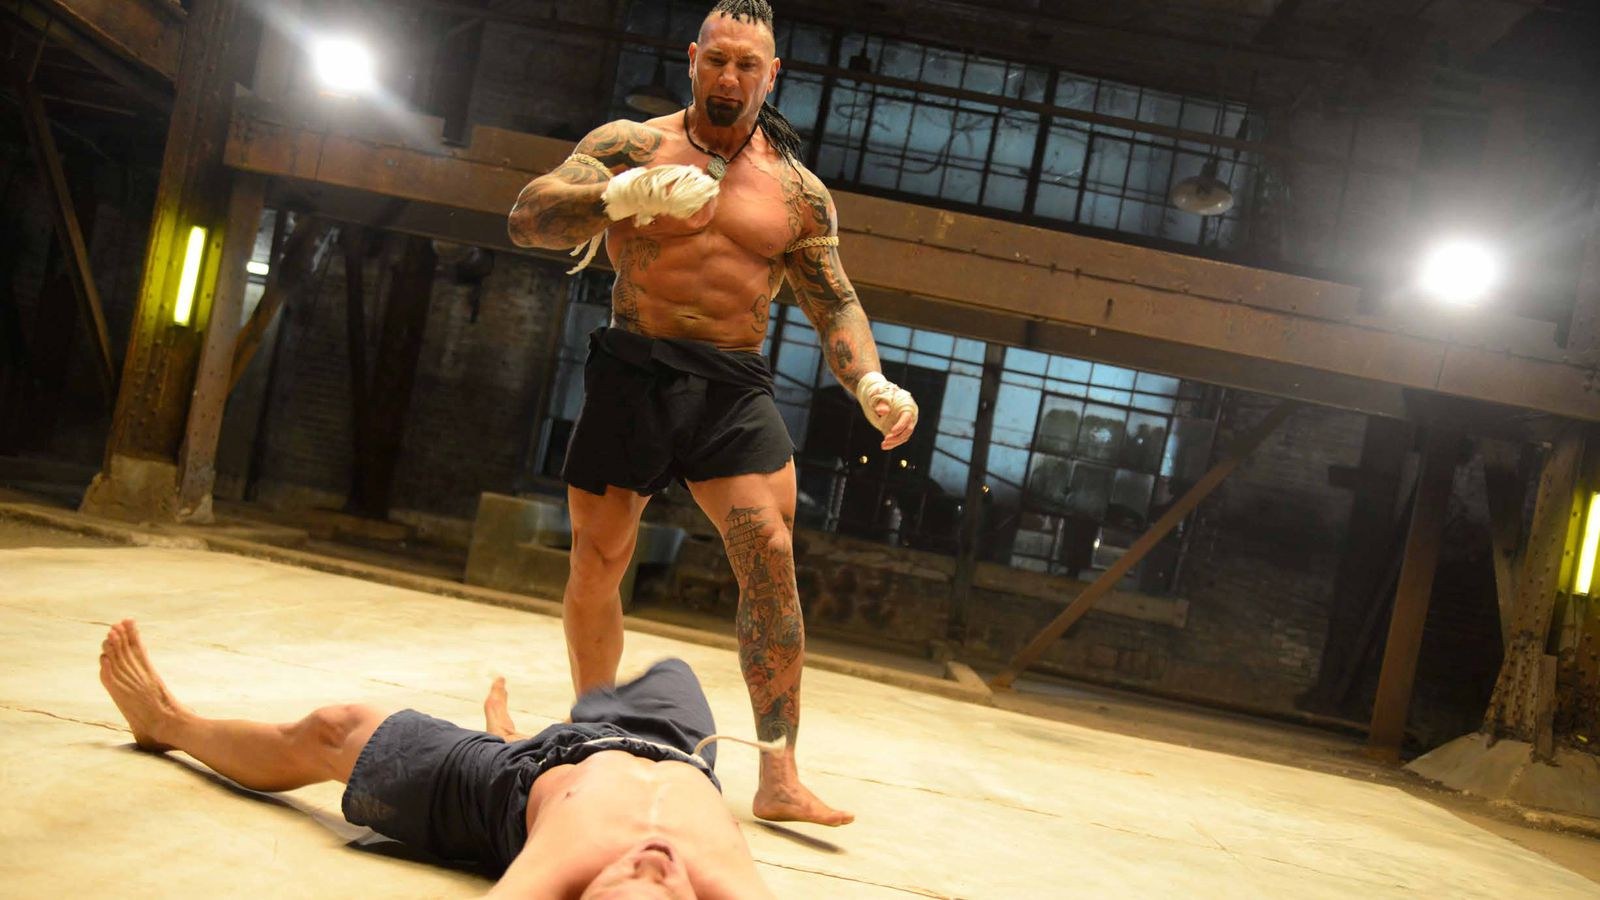 Pic: First look at Dave Bautista fighting as 'Tong Po' in ...